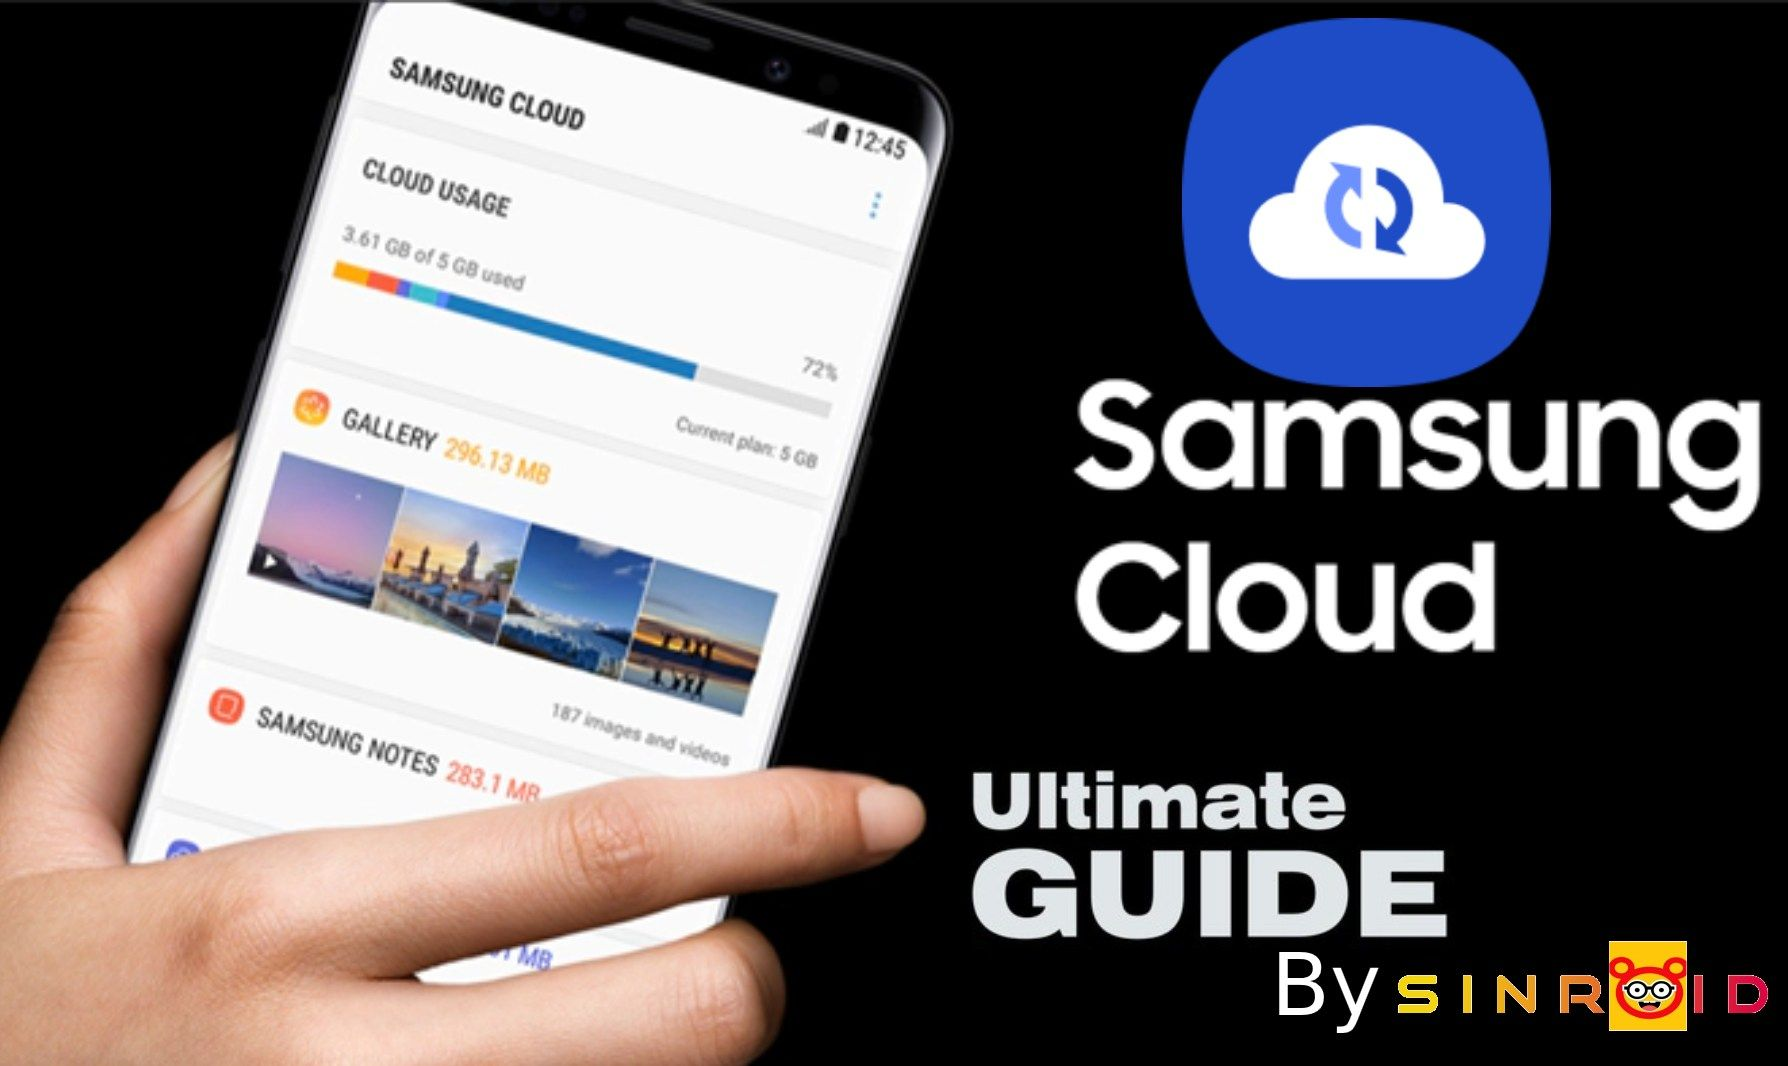 Samsung Cloud storage The Ultimate Guide 2020 in 2020